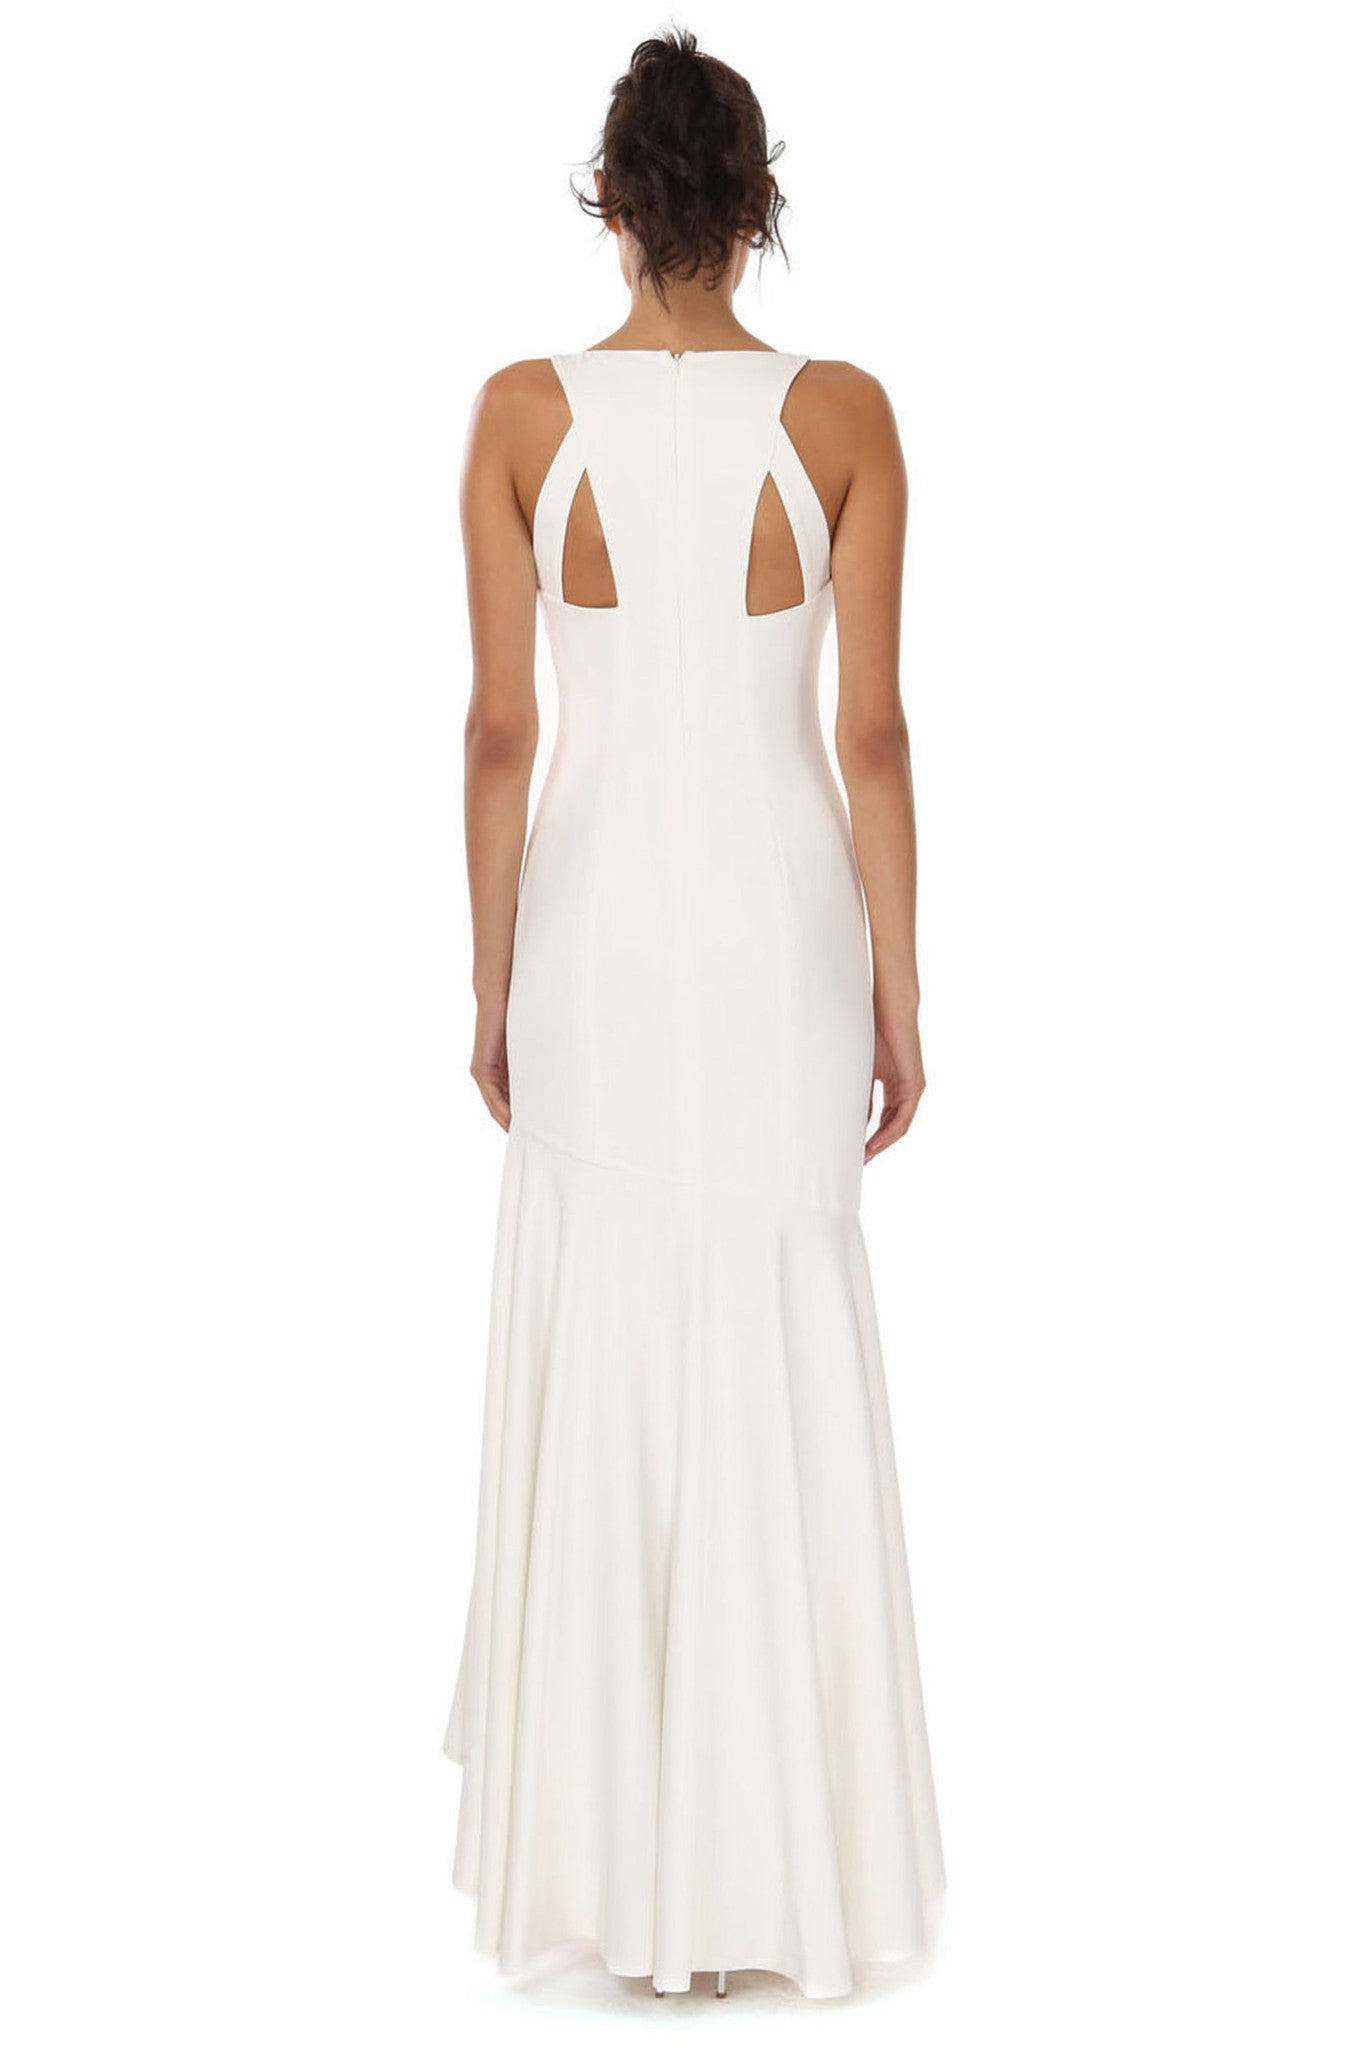 Jay Godfrey Ivory Waterfall Gown - Back View